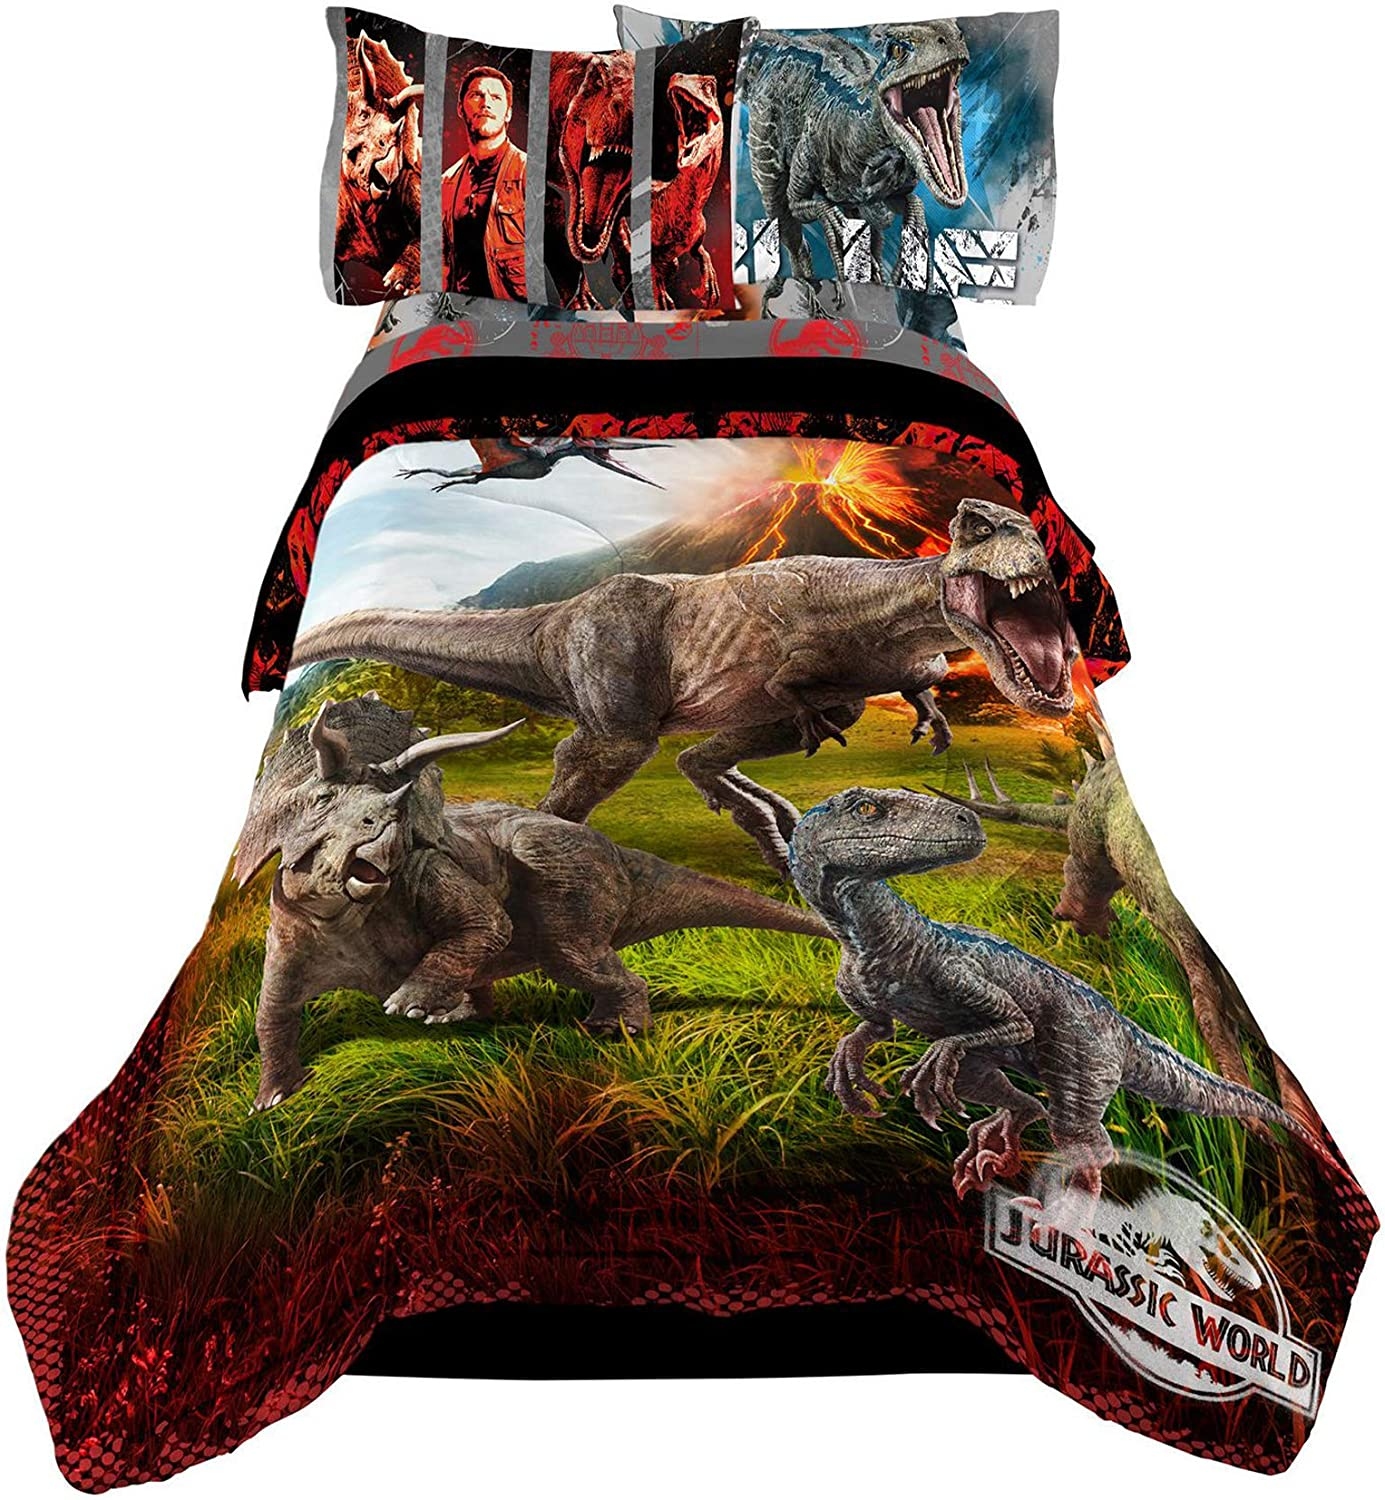 "Jurassic World Kids Bedding Sheet Twin Sheet Set with Comforter 4 Piece - 72"" x 86"""